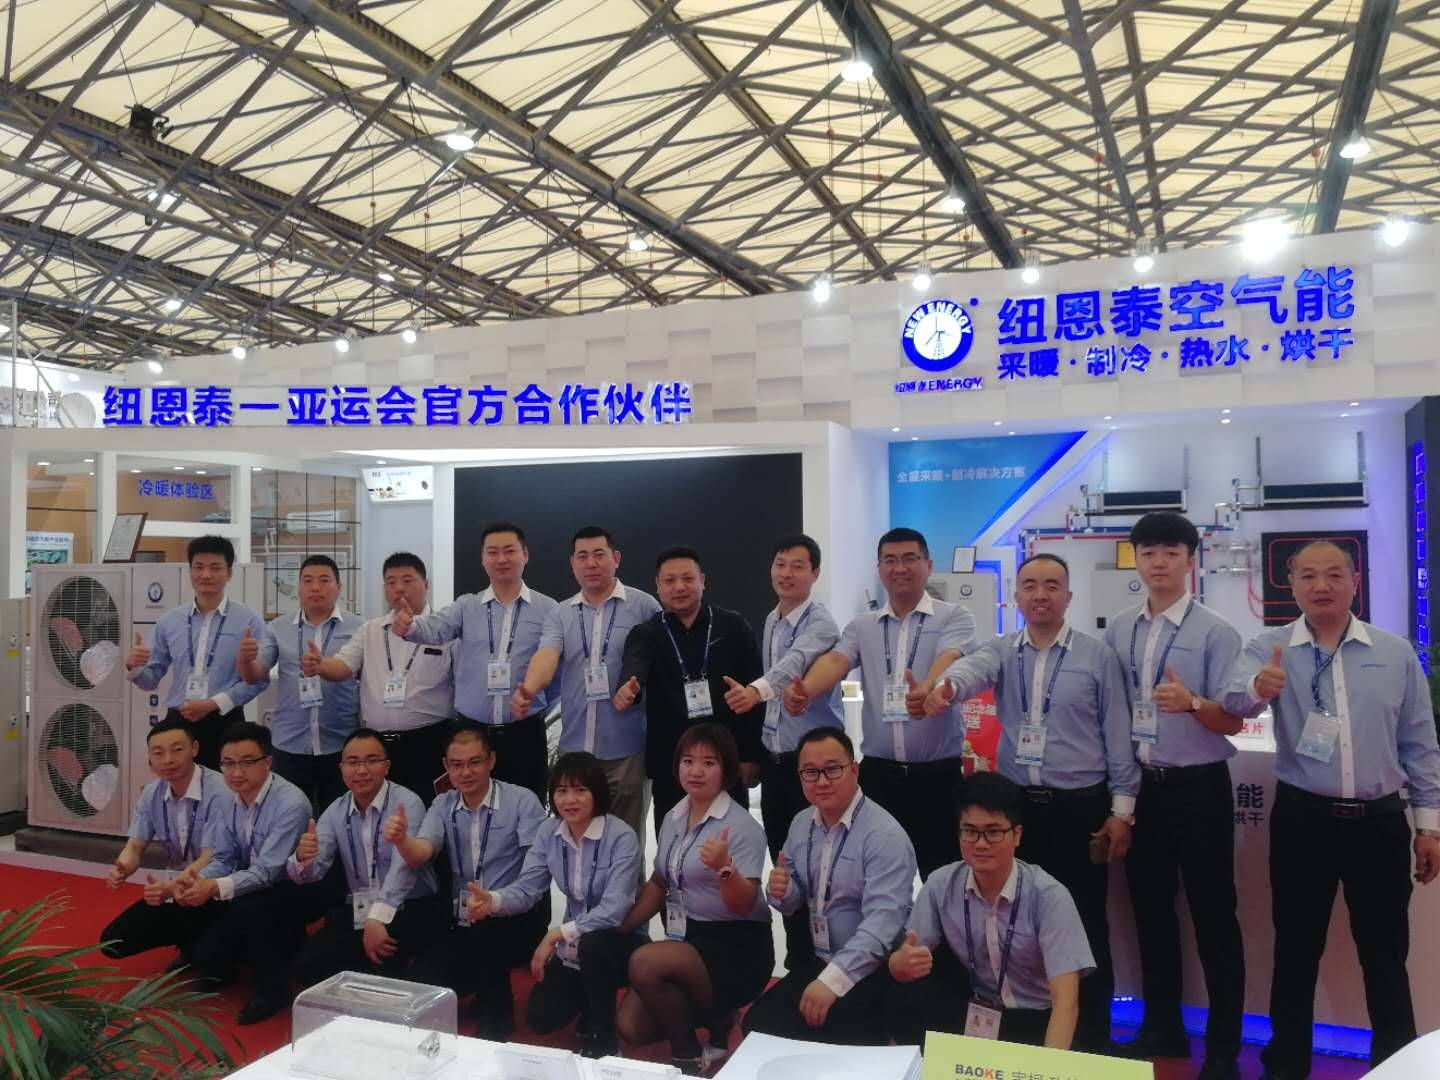 New Energy Nulite unveile at 30th China Refrigeration Exhibition